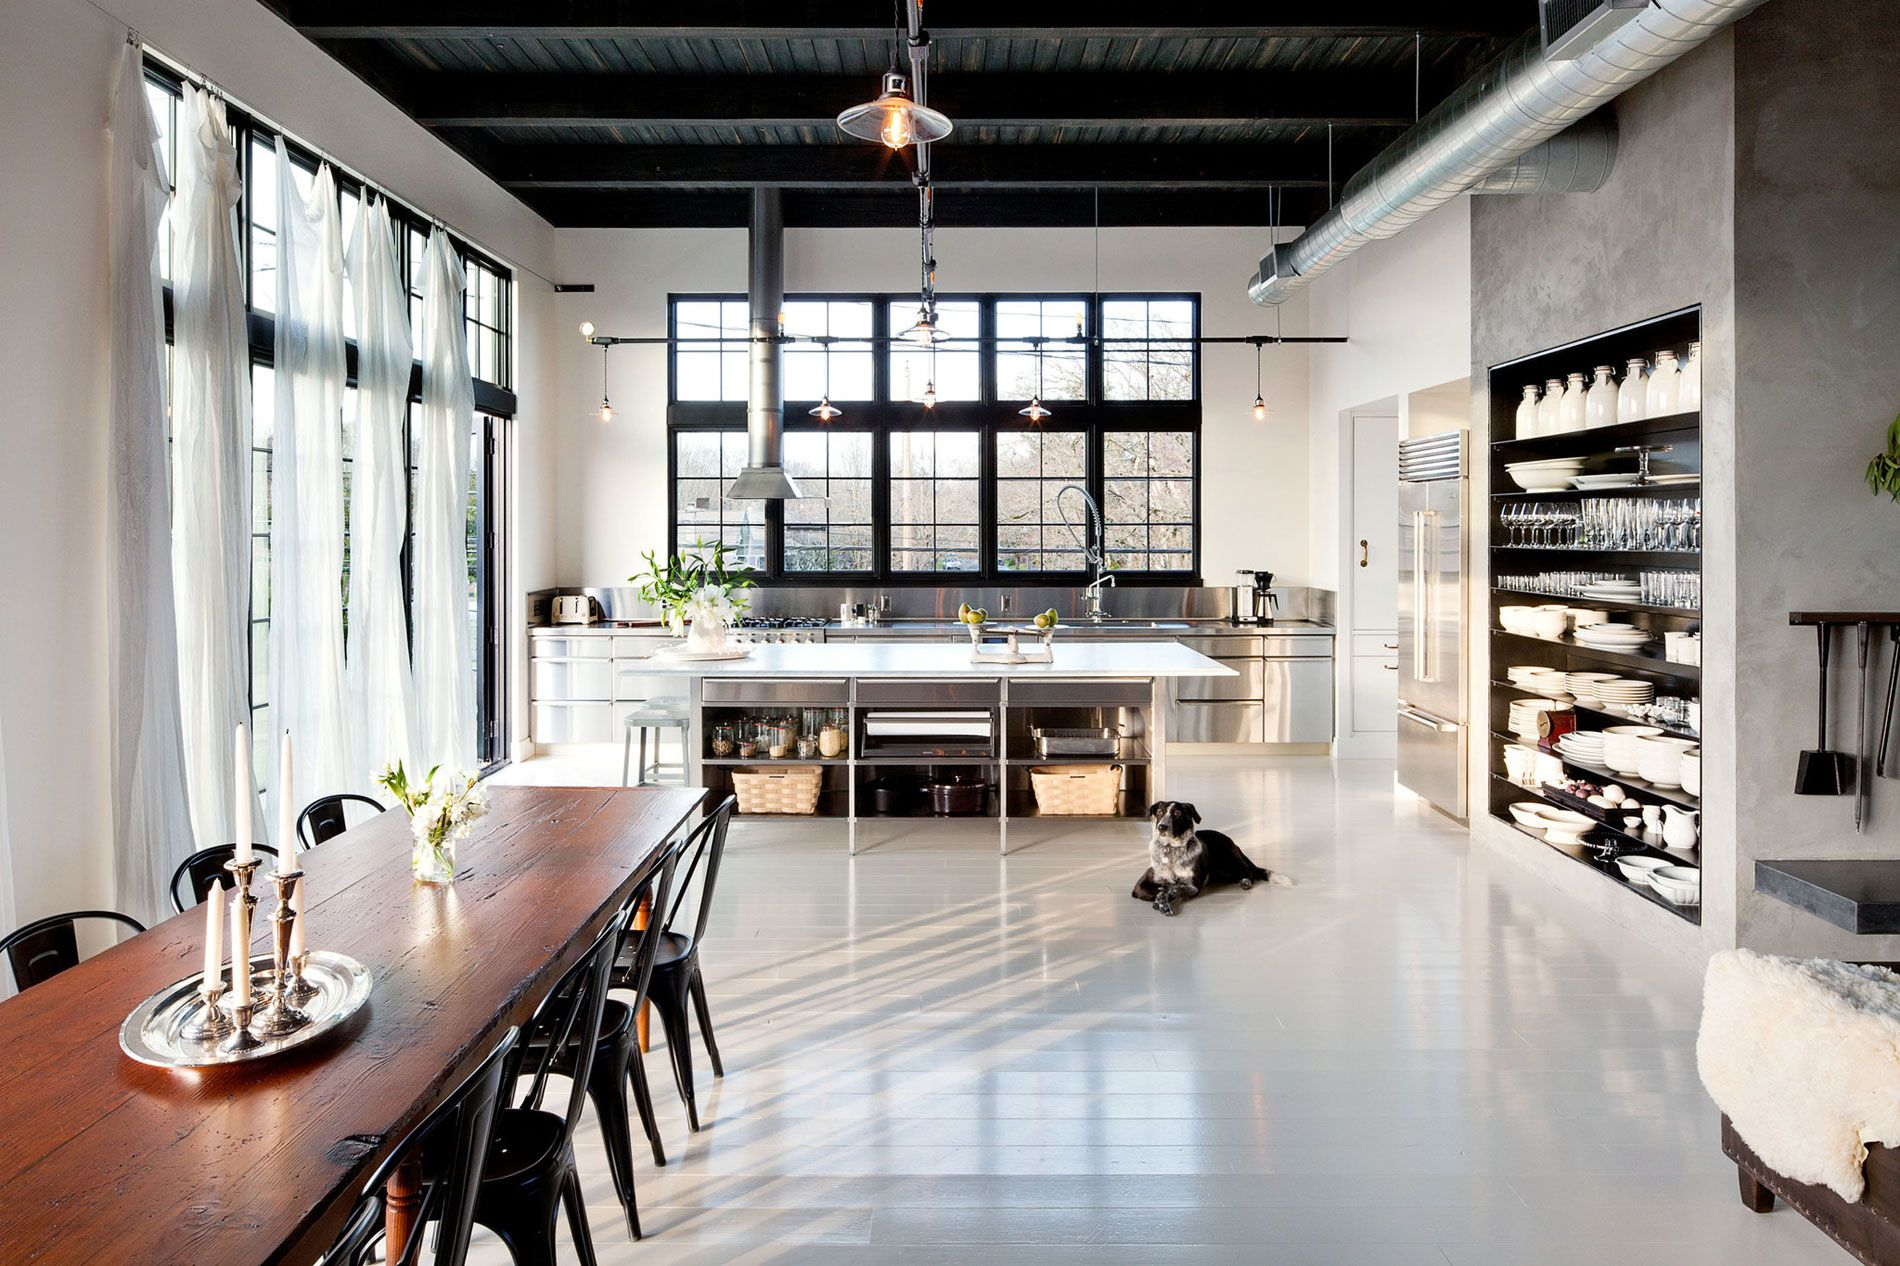 Se Division Street Industrial Penthouse In Portland By Emerick Architects 06